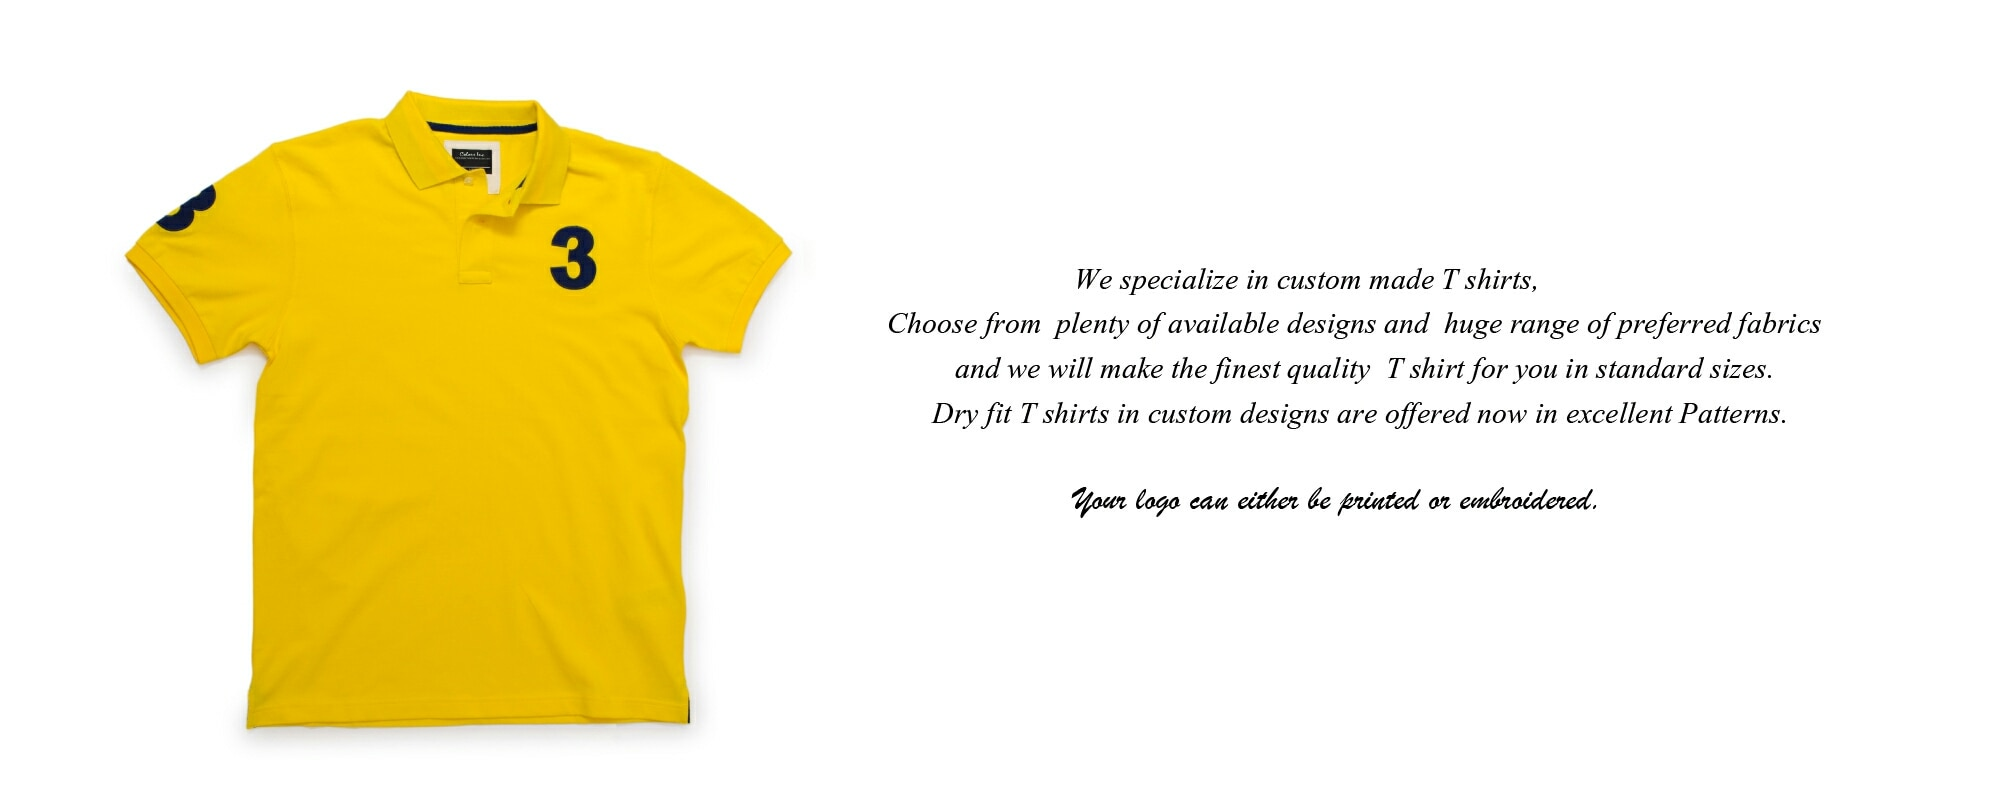 Custom made Premium T shirts from colors Inc